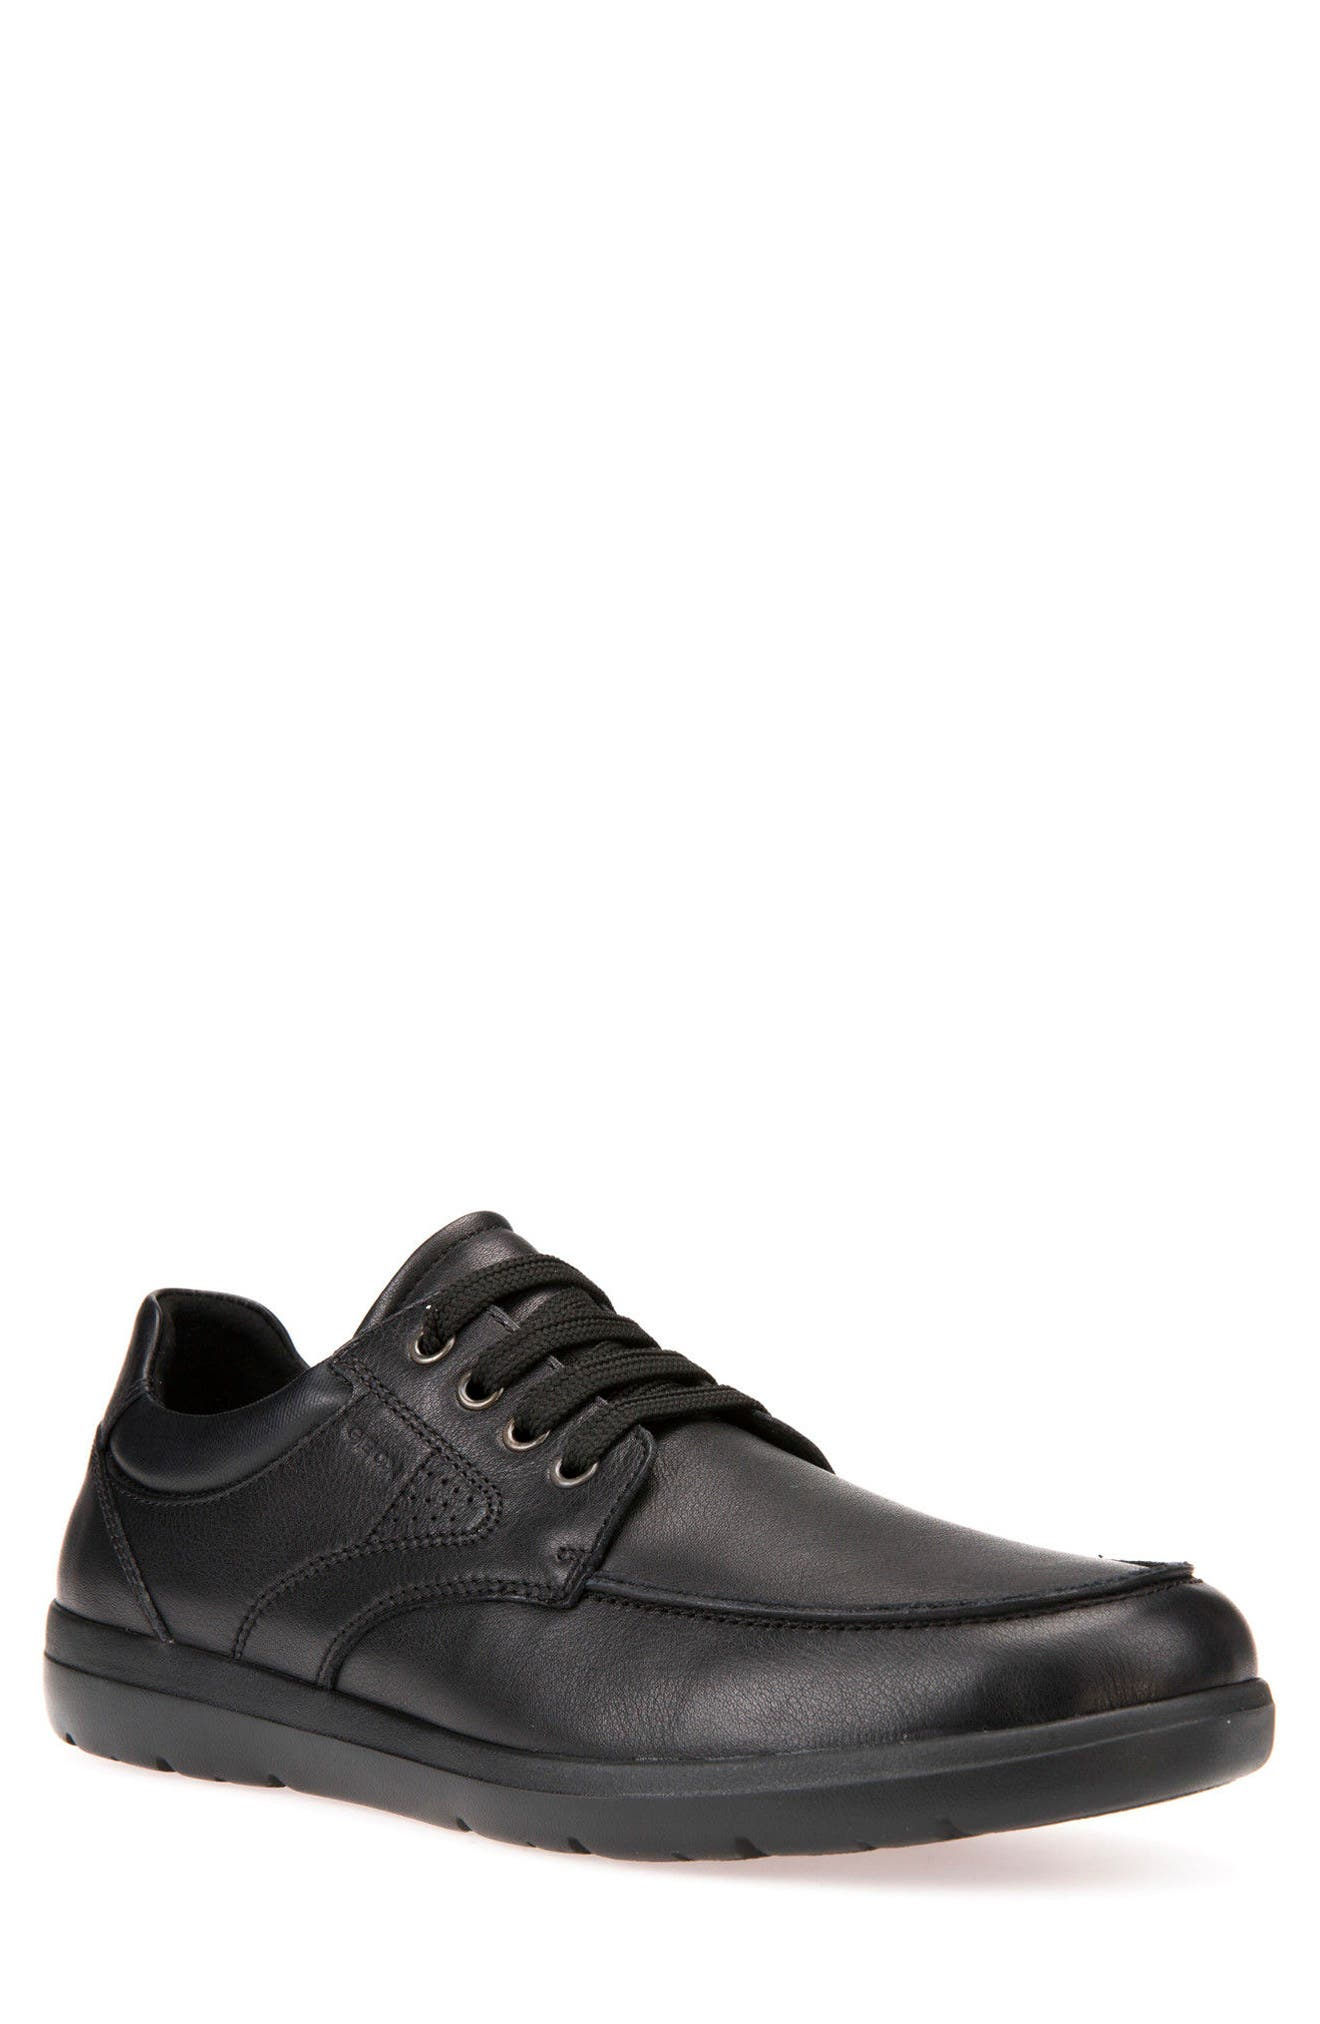 Geox Leitan 1 Oxford (Men)